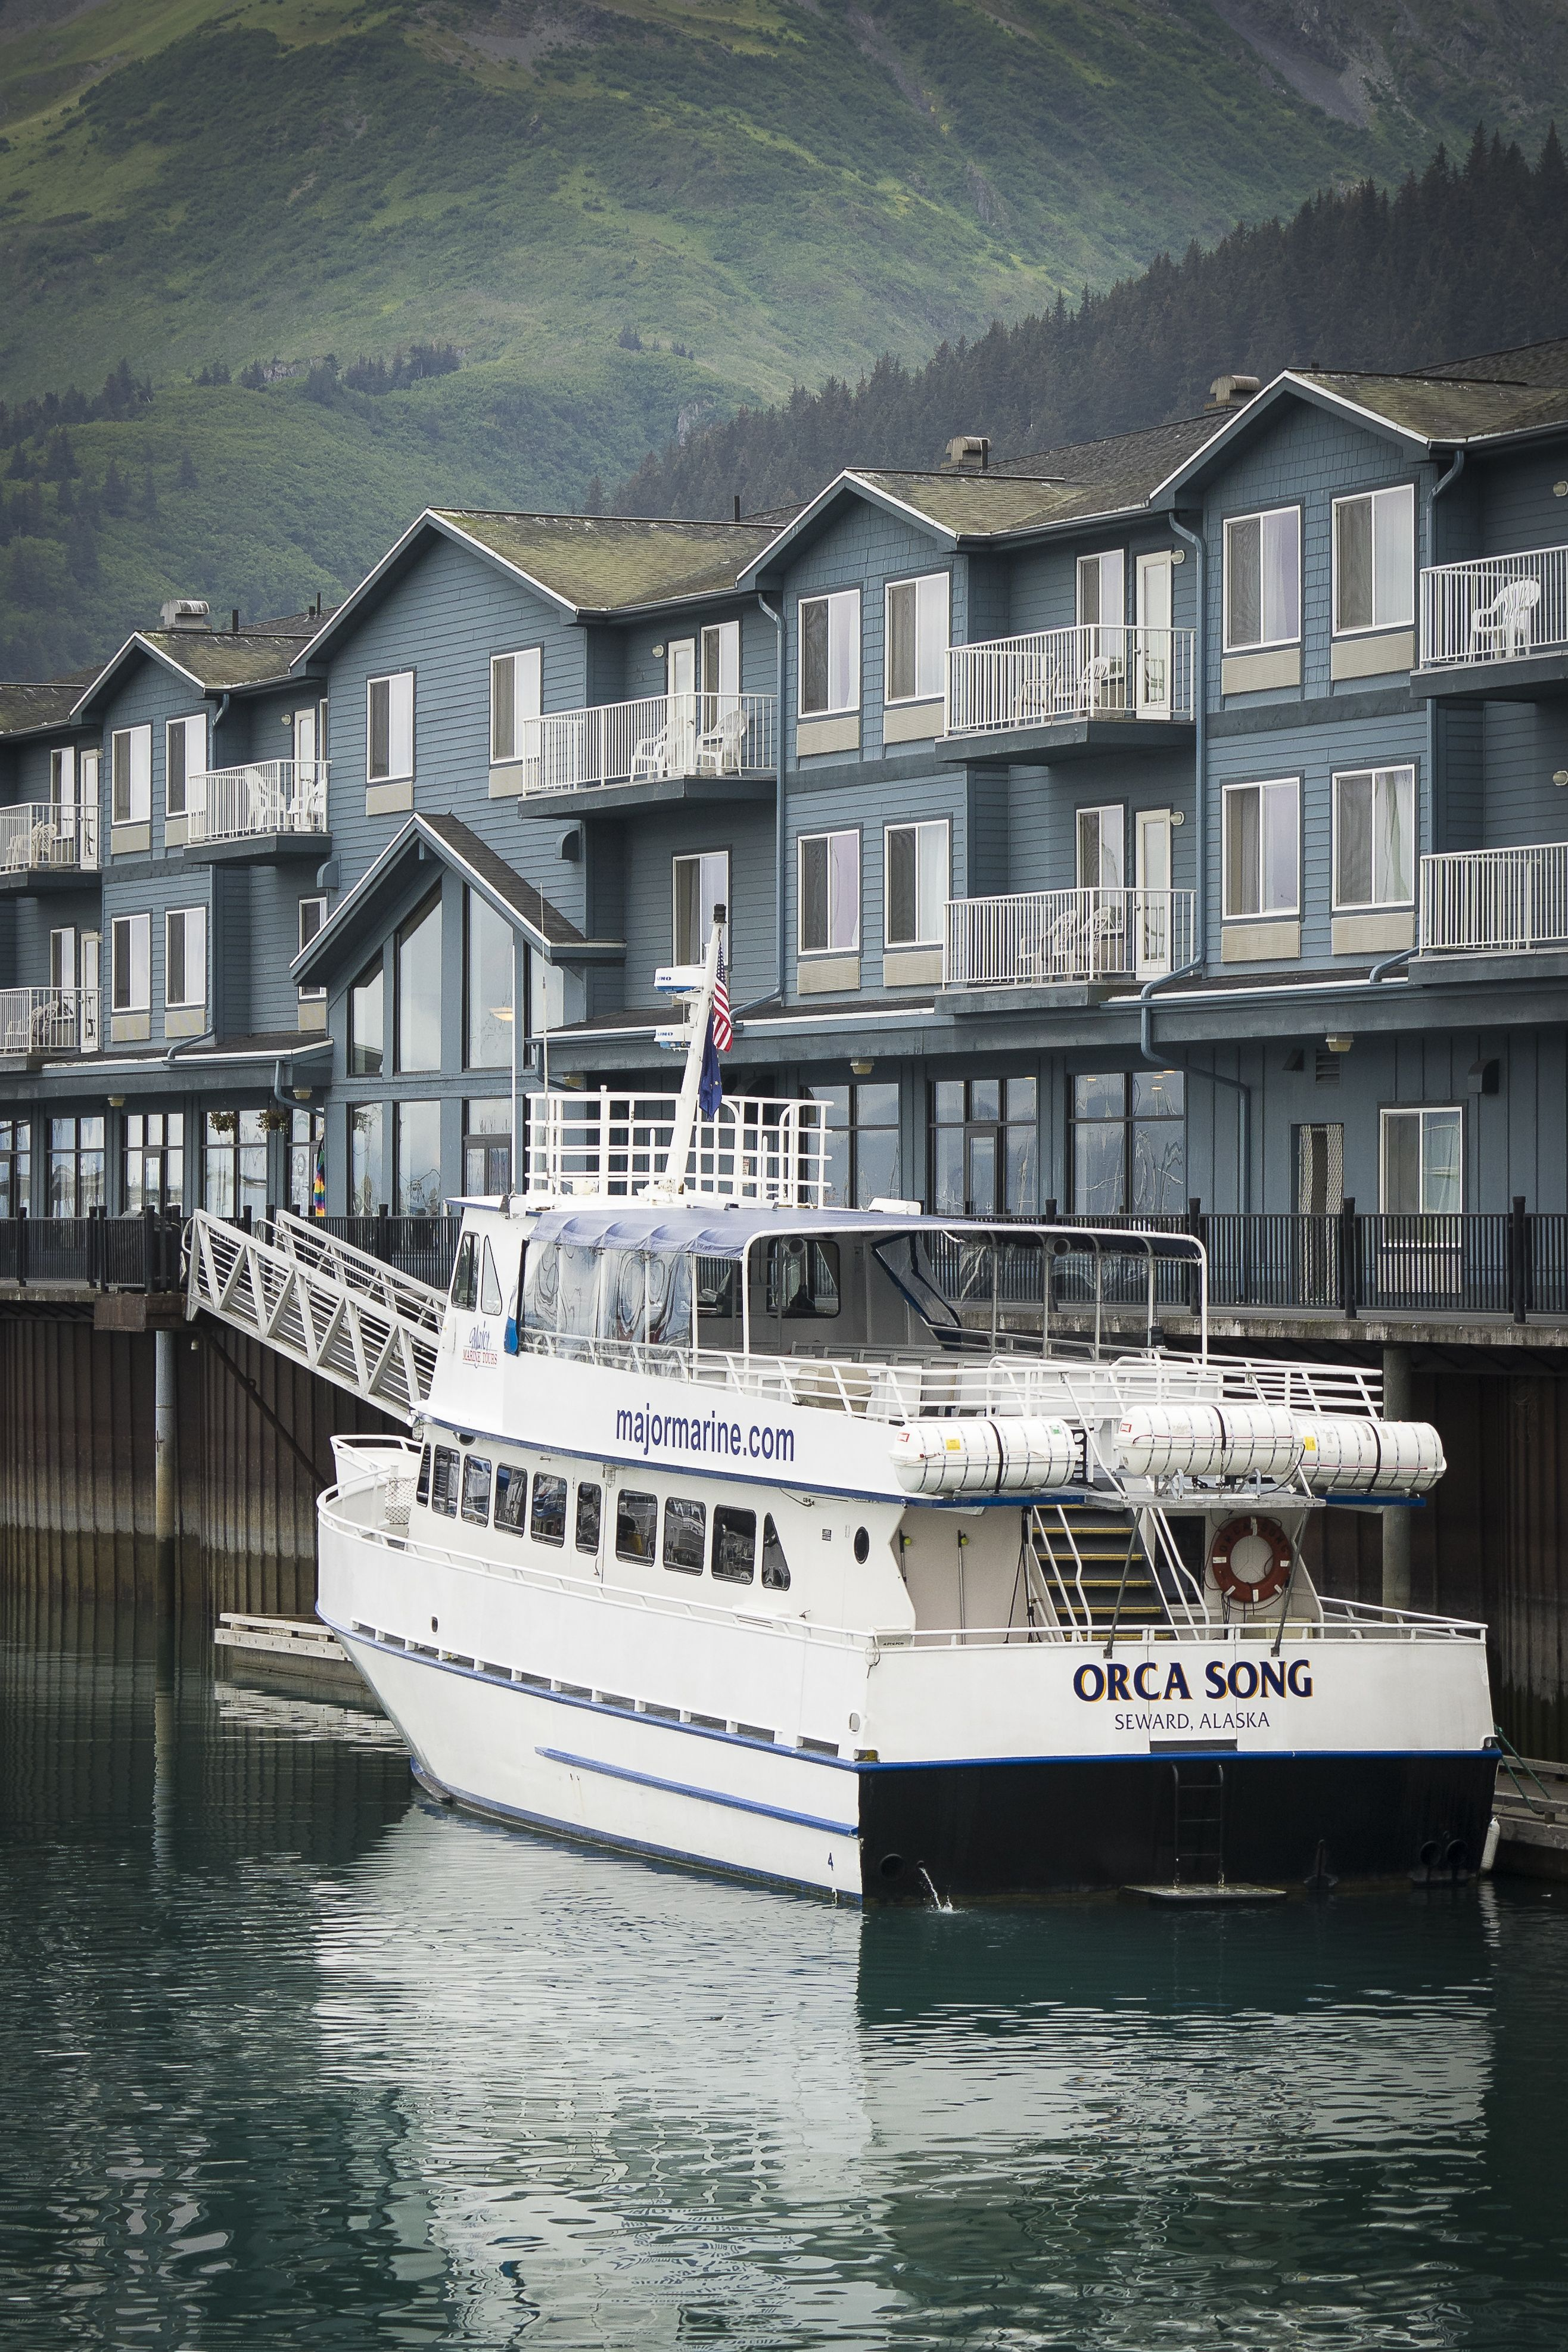 Harbor 360 Hotel Is The Premier Waterfront Hotel In Seward Alaska Located Directly On The Seward Small Boat Harbor On Site Boarding Hotel Alaska Waterfront